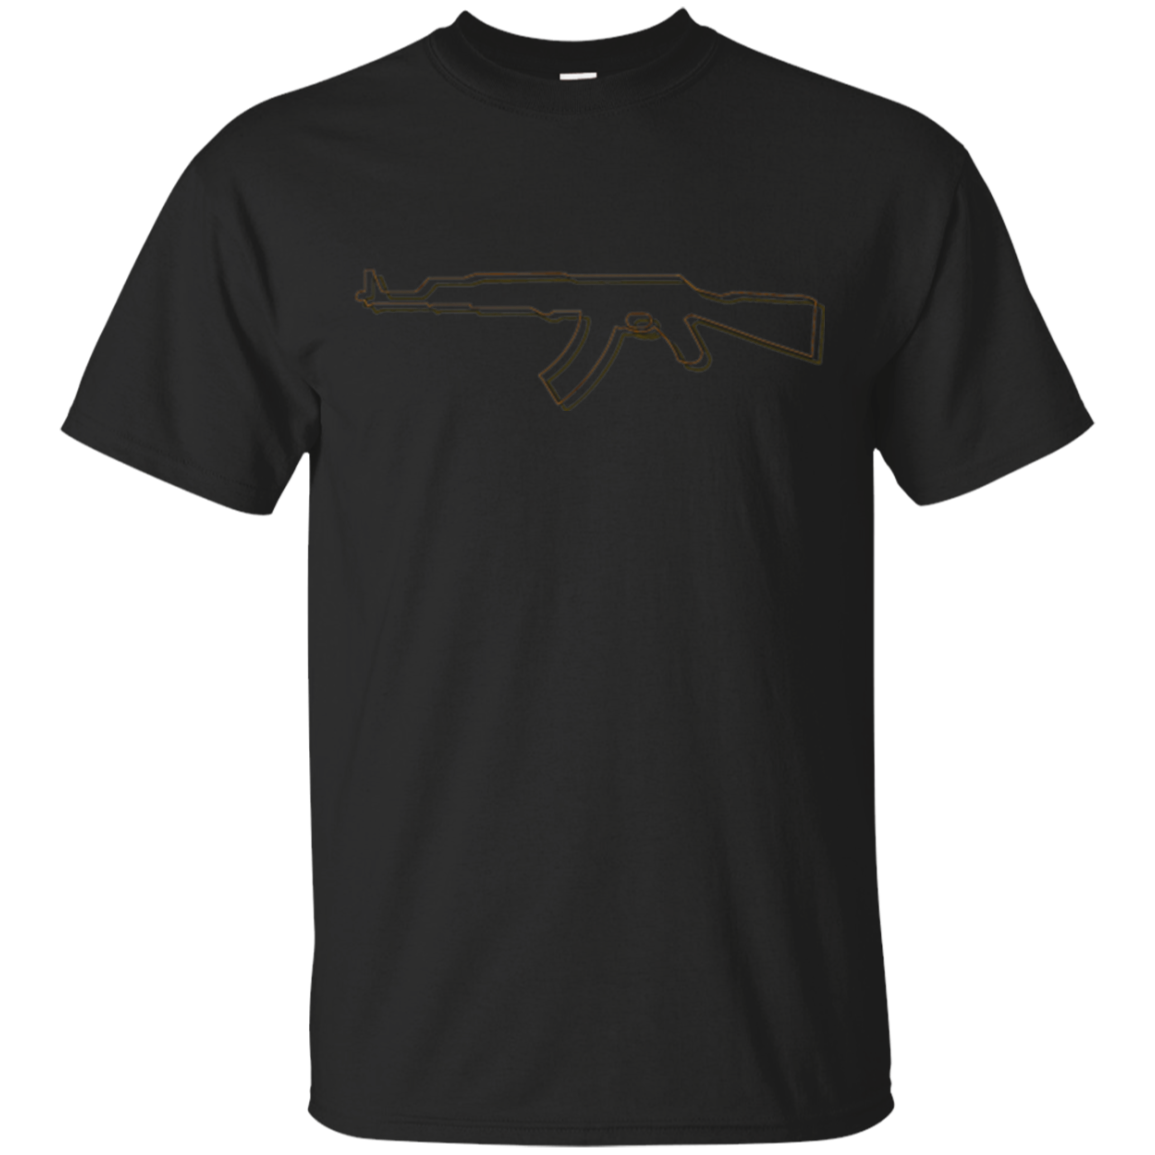 AK Rifle Operator Badge, Limited Edition T-Shirt